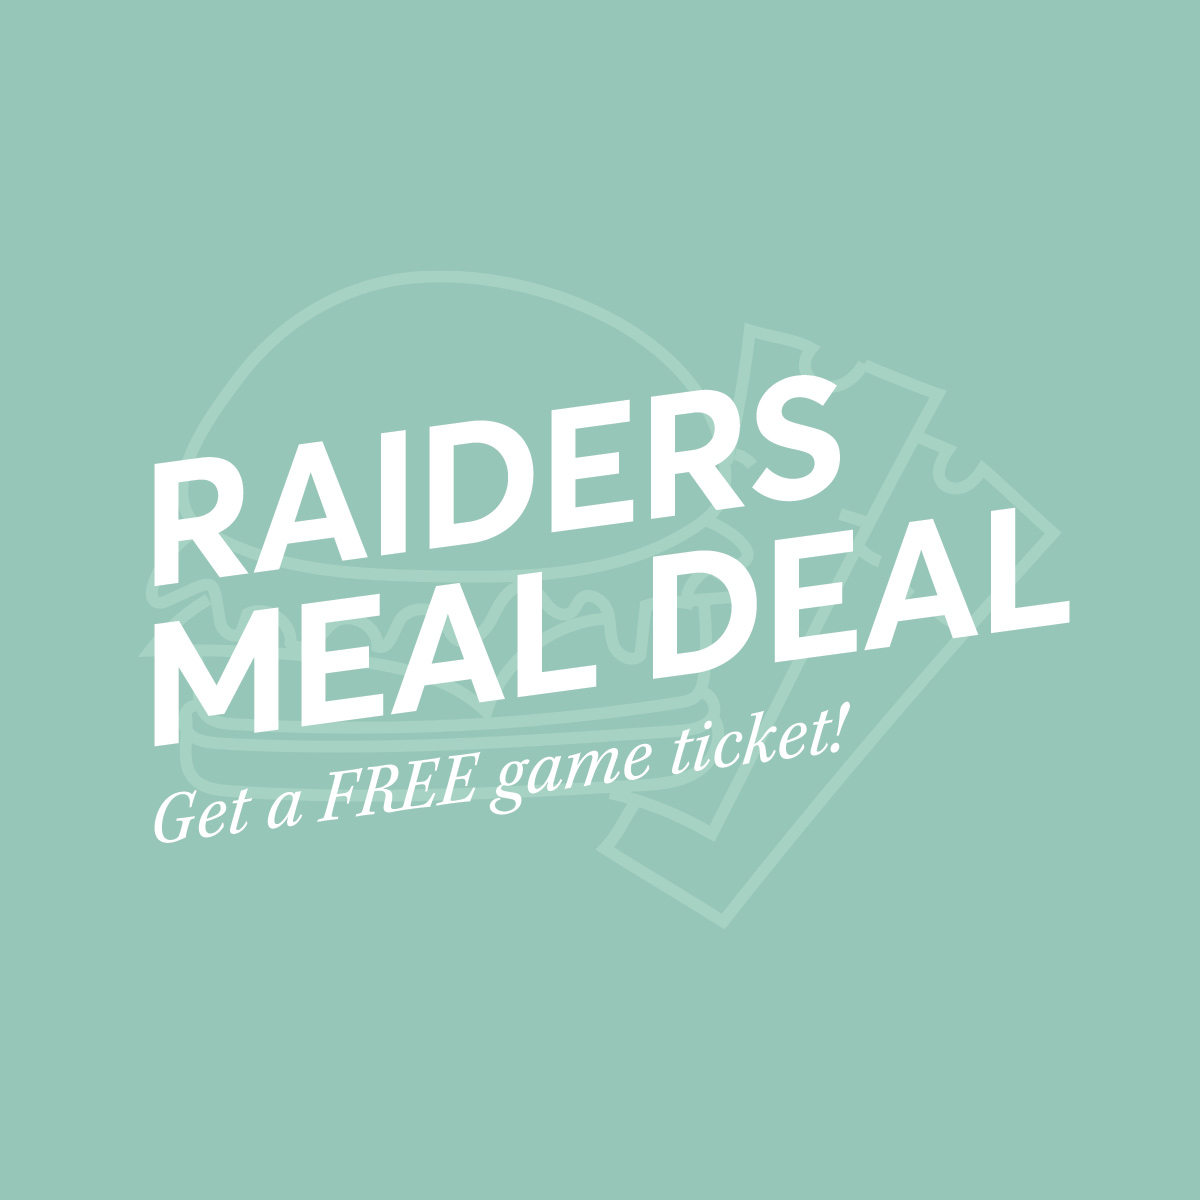 Raiders Ticket & Meal Deal Square